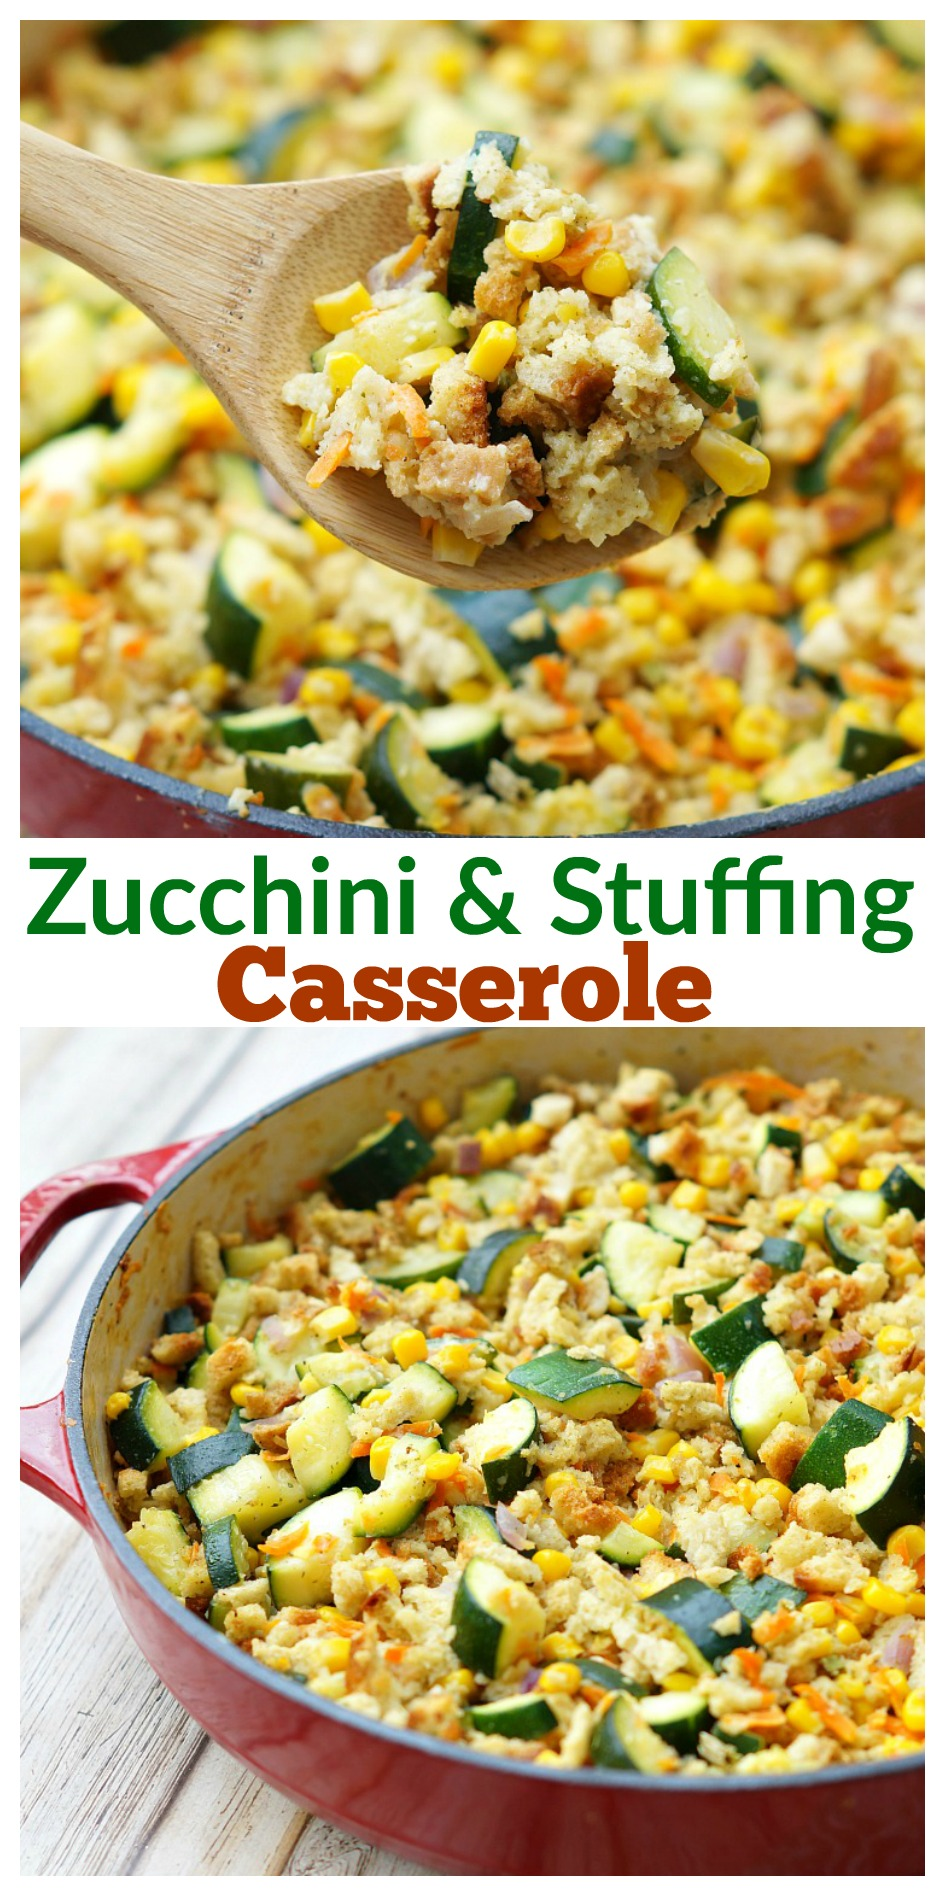 Easy Zucchini and Stuffing Casserole with Corn